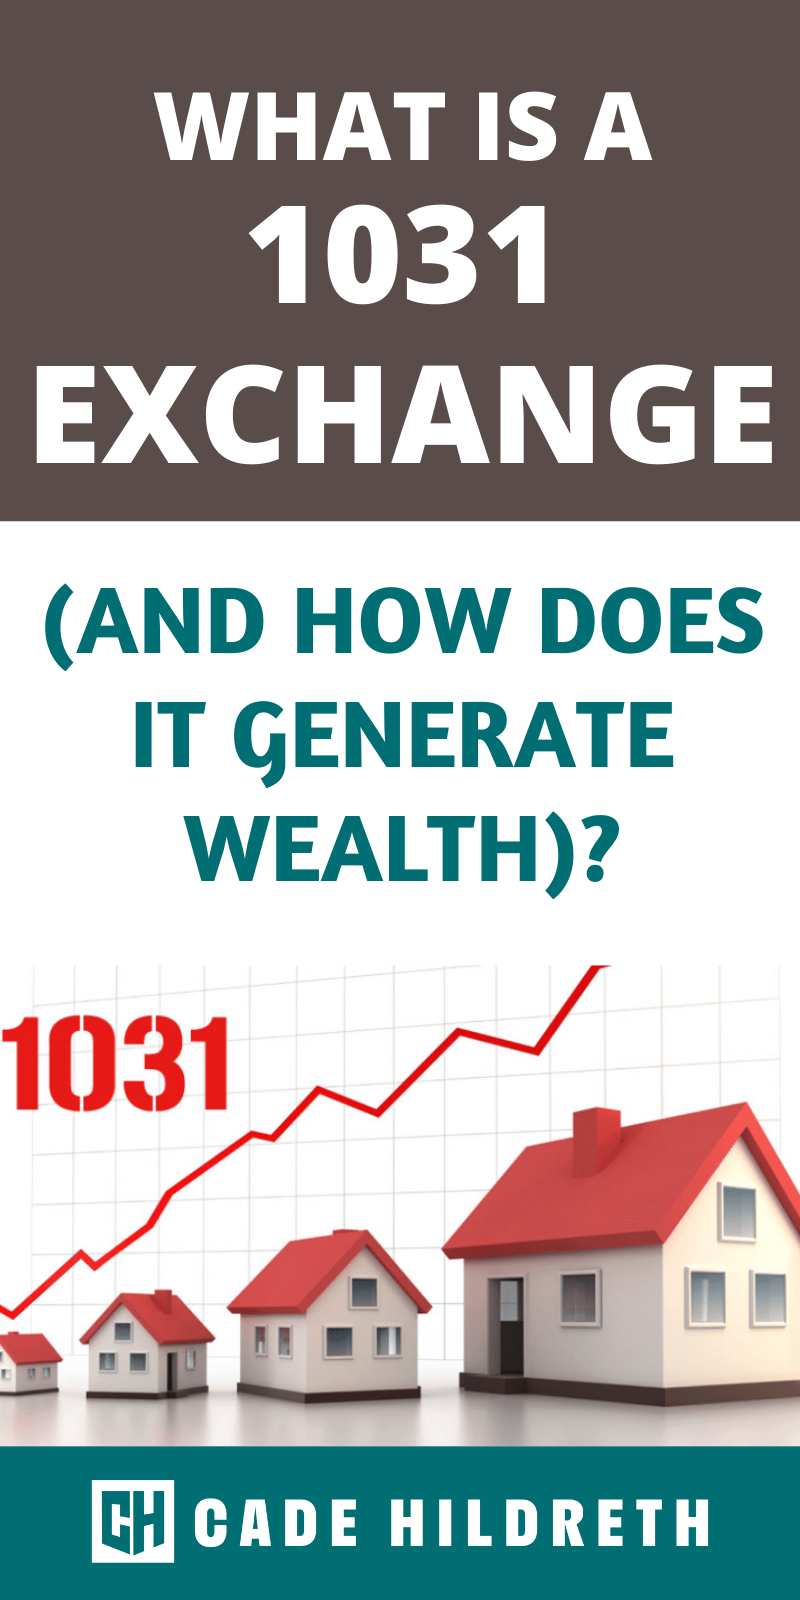 Learn how to do a 1031 Exchange in 2020, including rules, types, success stories and more! #1031exchange #realestate #1031exchangerealestate #1031exchange2020